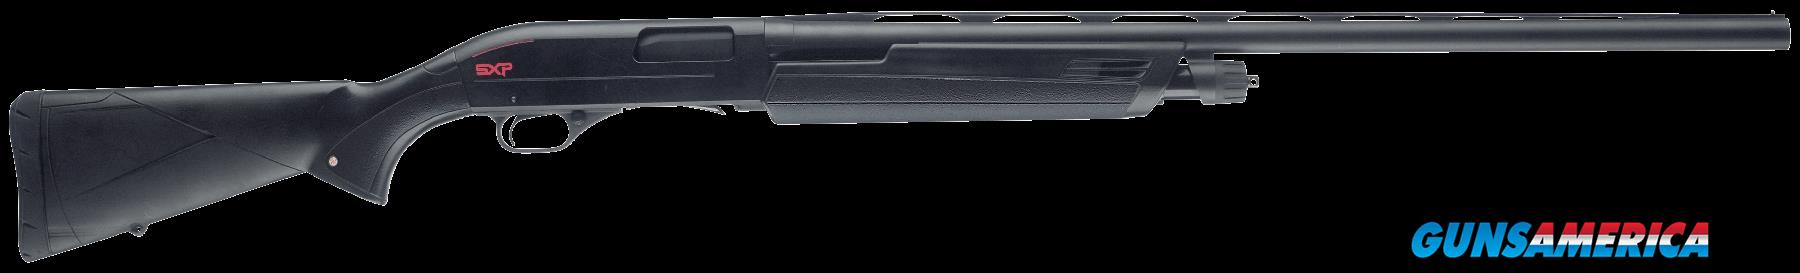 "Winchester Guns 512251291 SXP Pump Black Shadow 12 Gauge 26"" 3.5"" Black Synthetic Stk Black Rcvr  Guns > Shotguns > W Misc Shotguns"